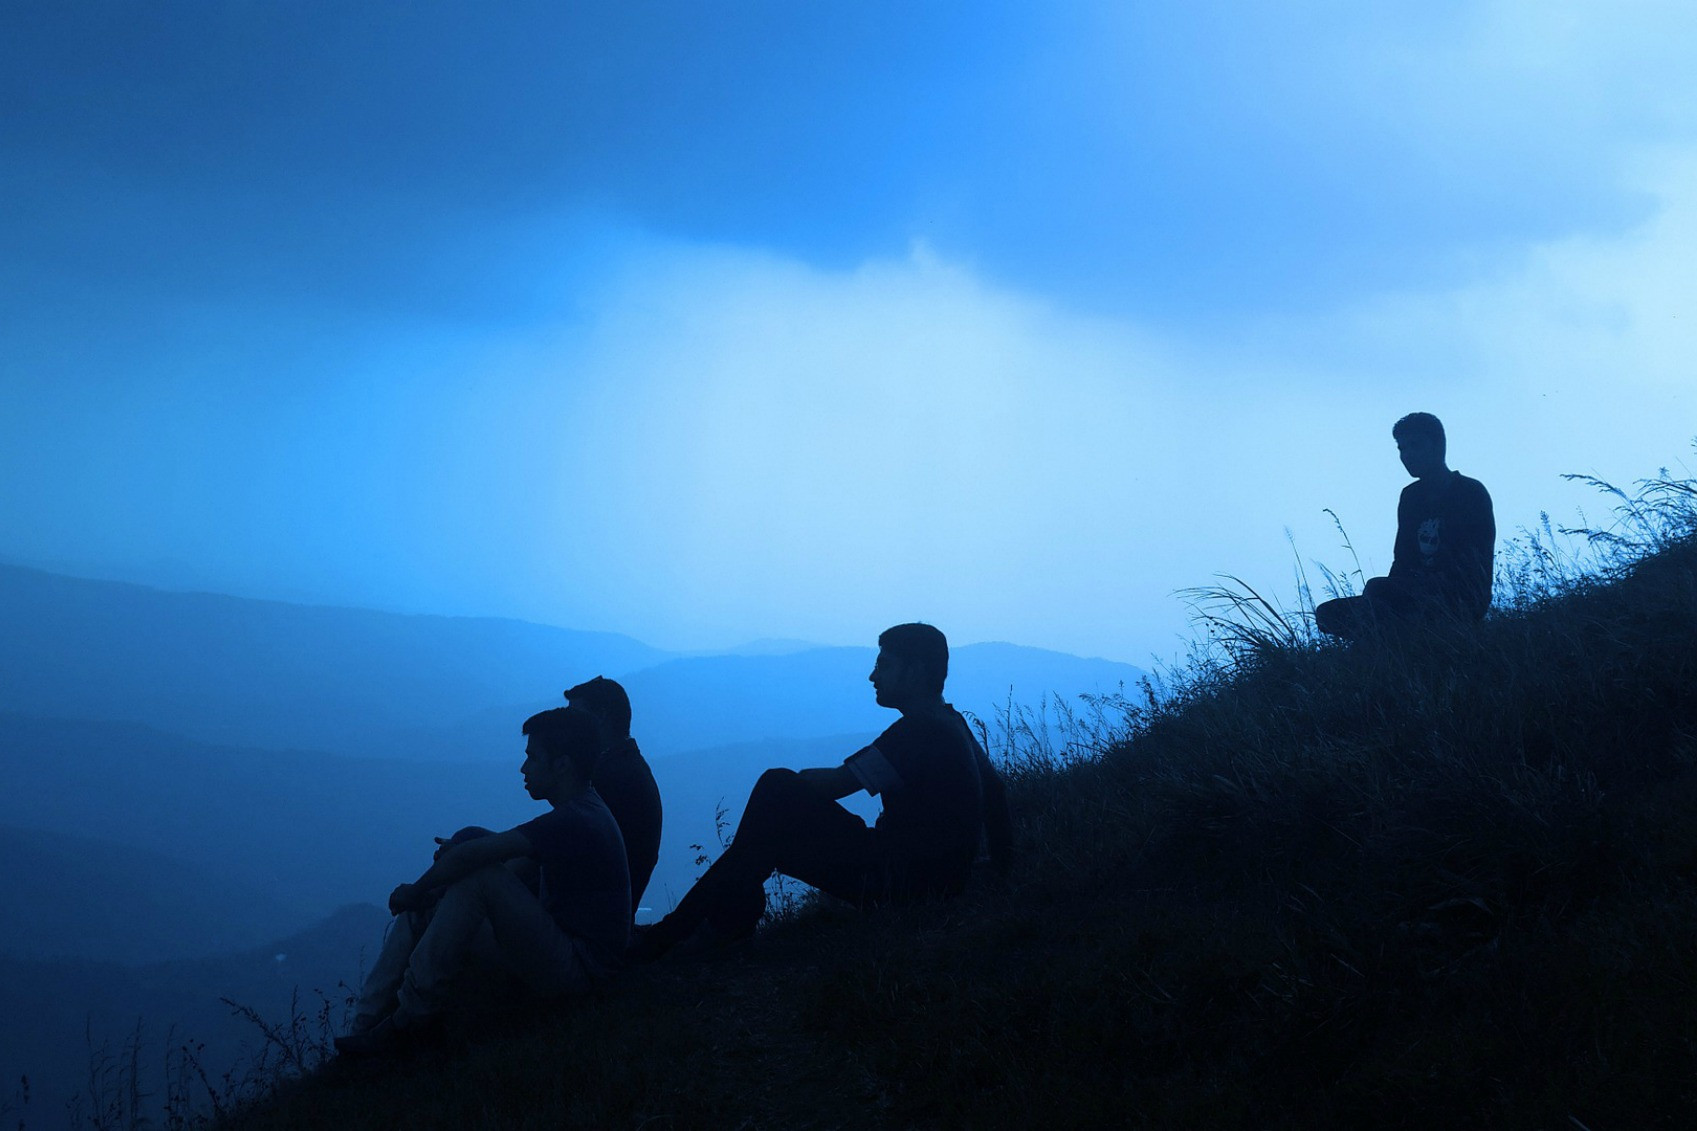 Health Counseling includes Mindfulness Meditation opportunities at Soul 2 Soul Healing